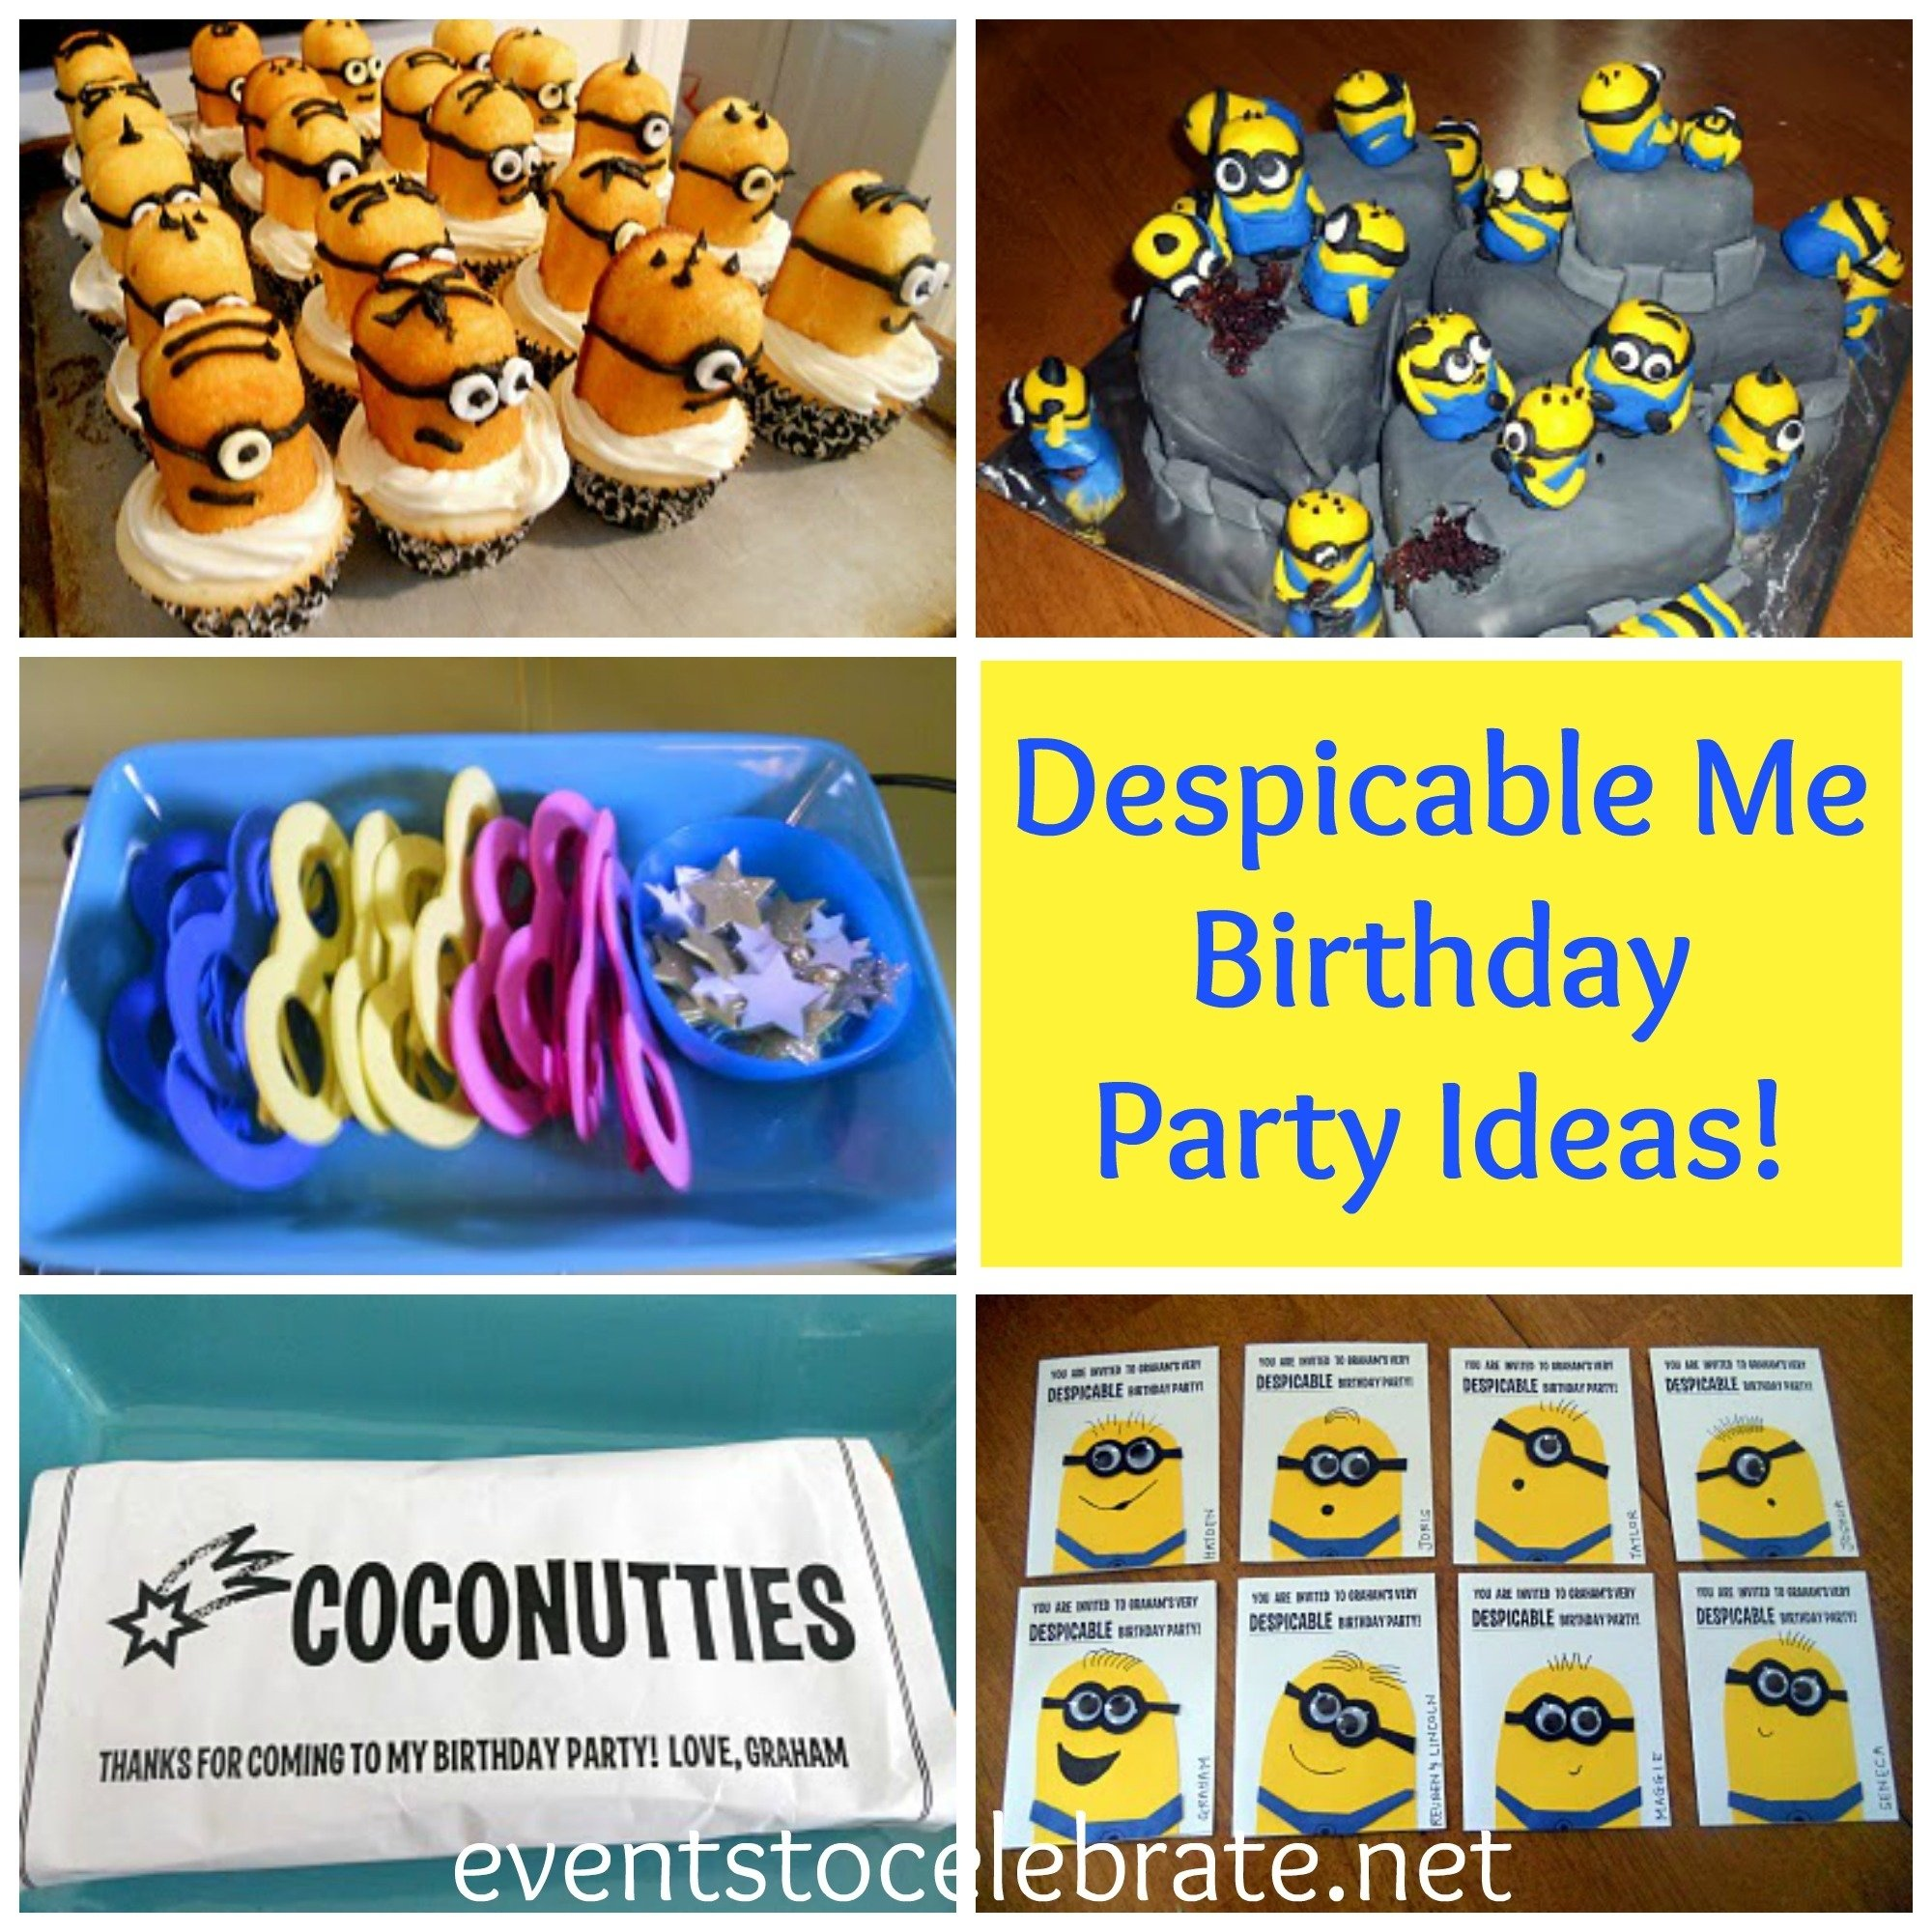 10 Stylish Despicable Me Party Food Ideas despicable me birthday party events to celebrate